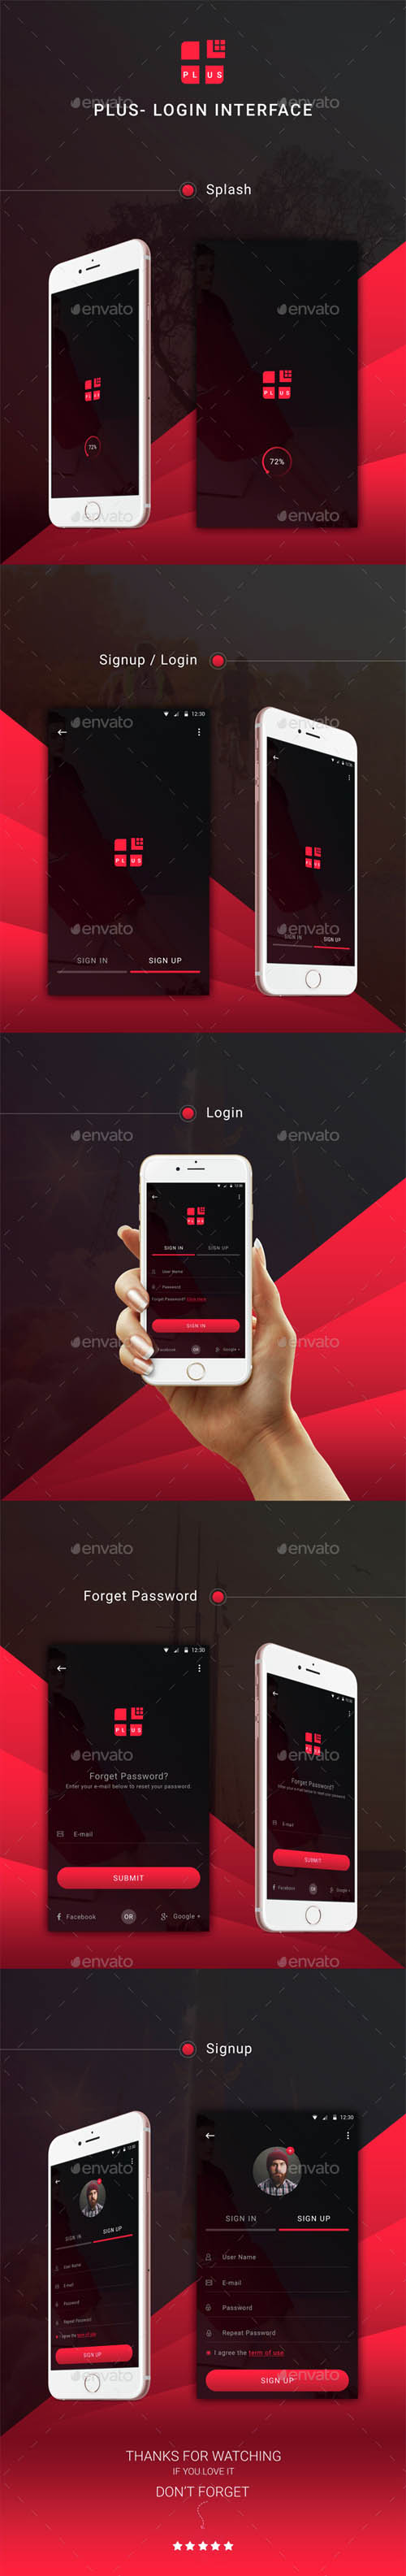 Plus - Login Interface 14890078